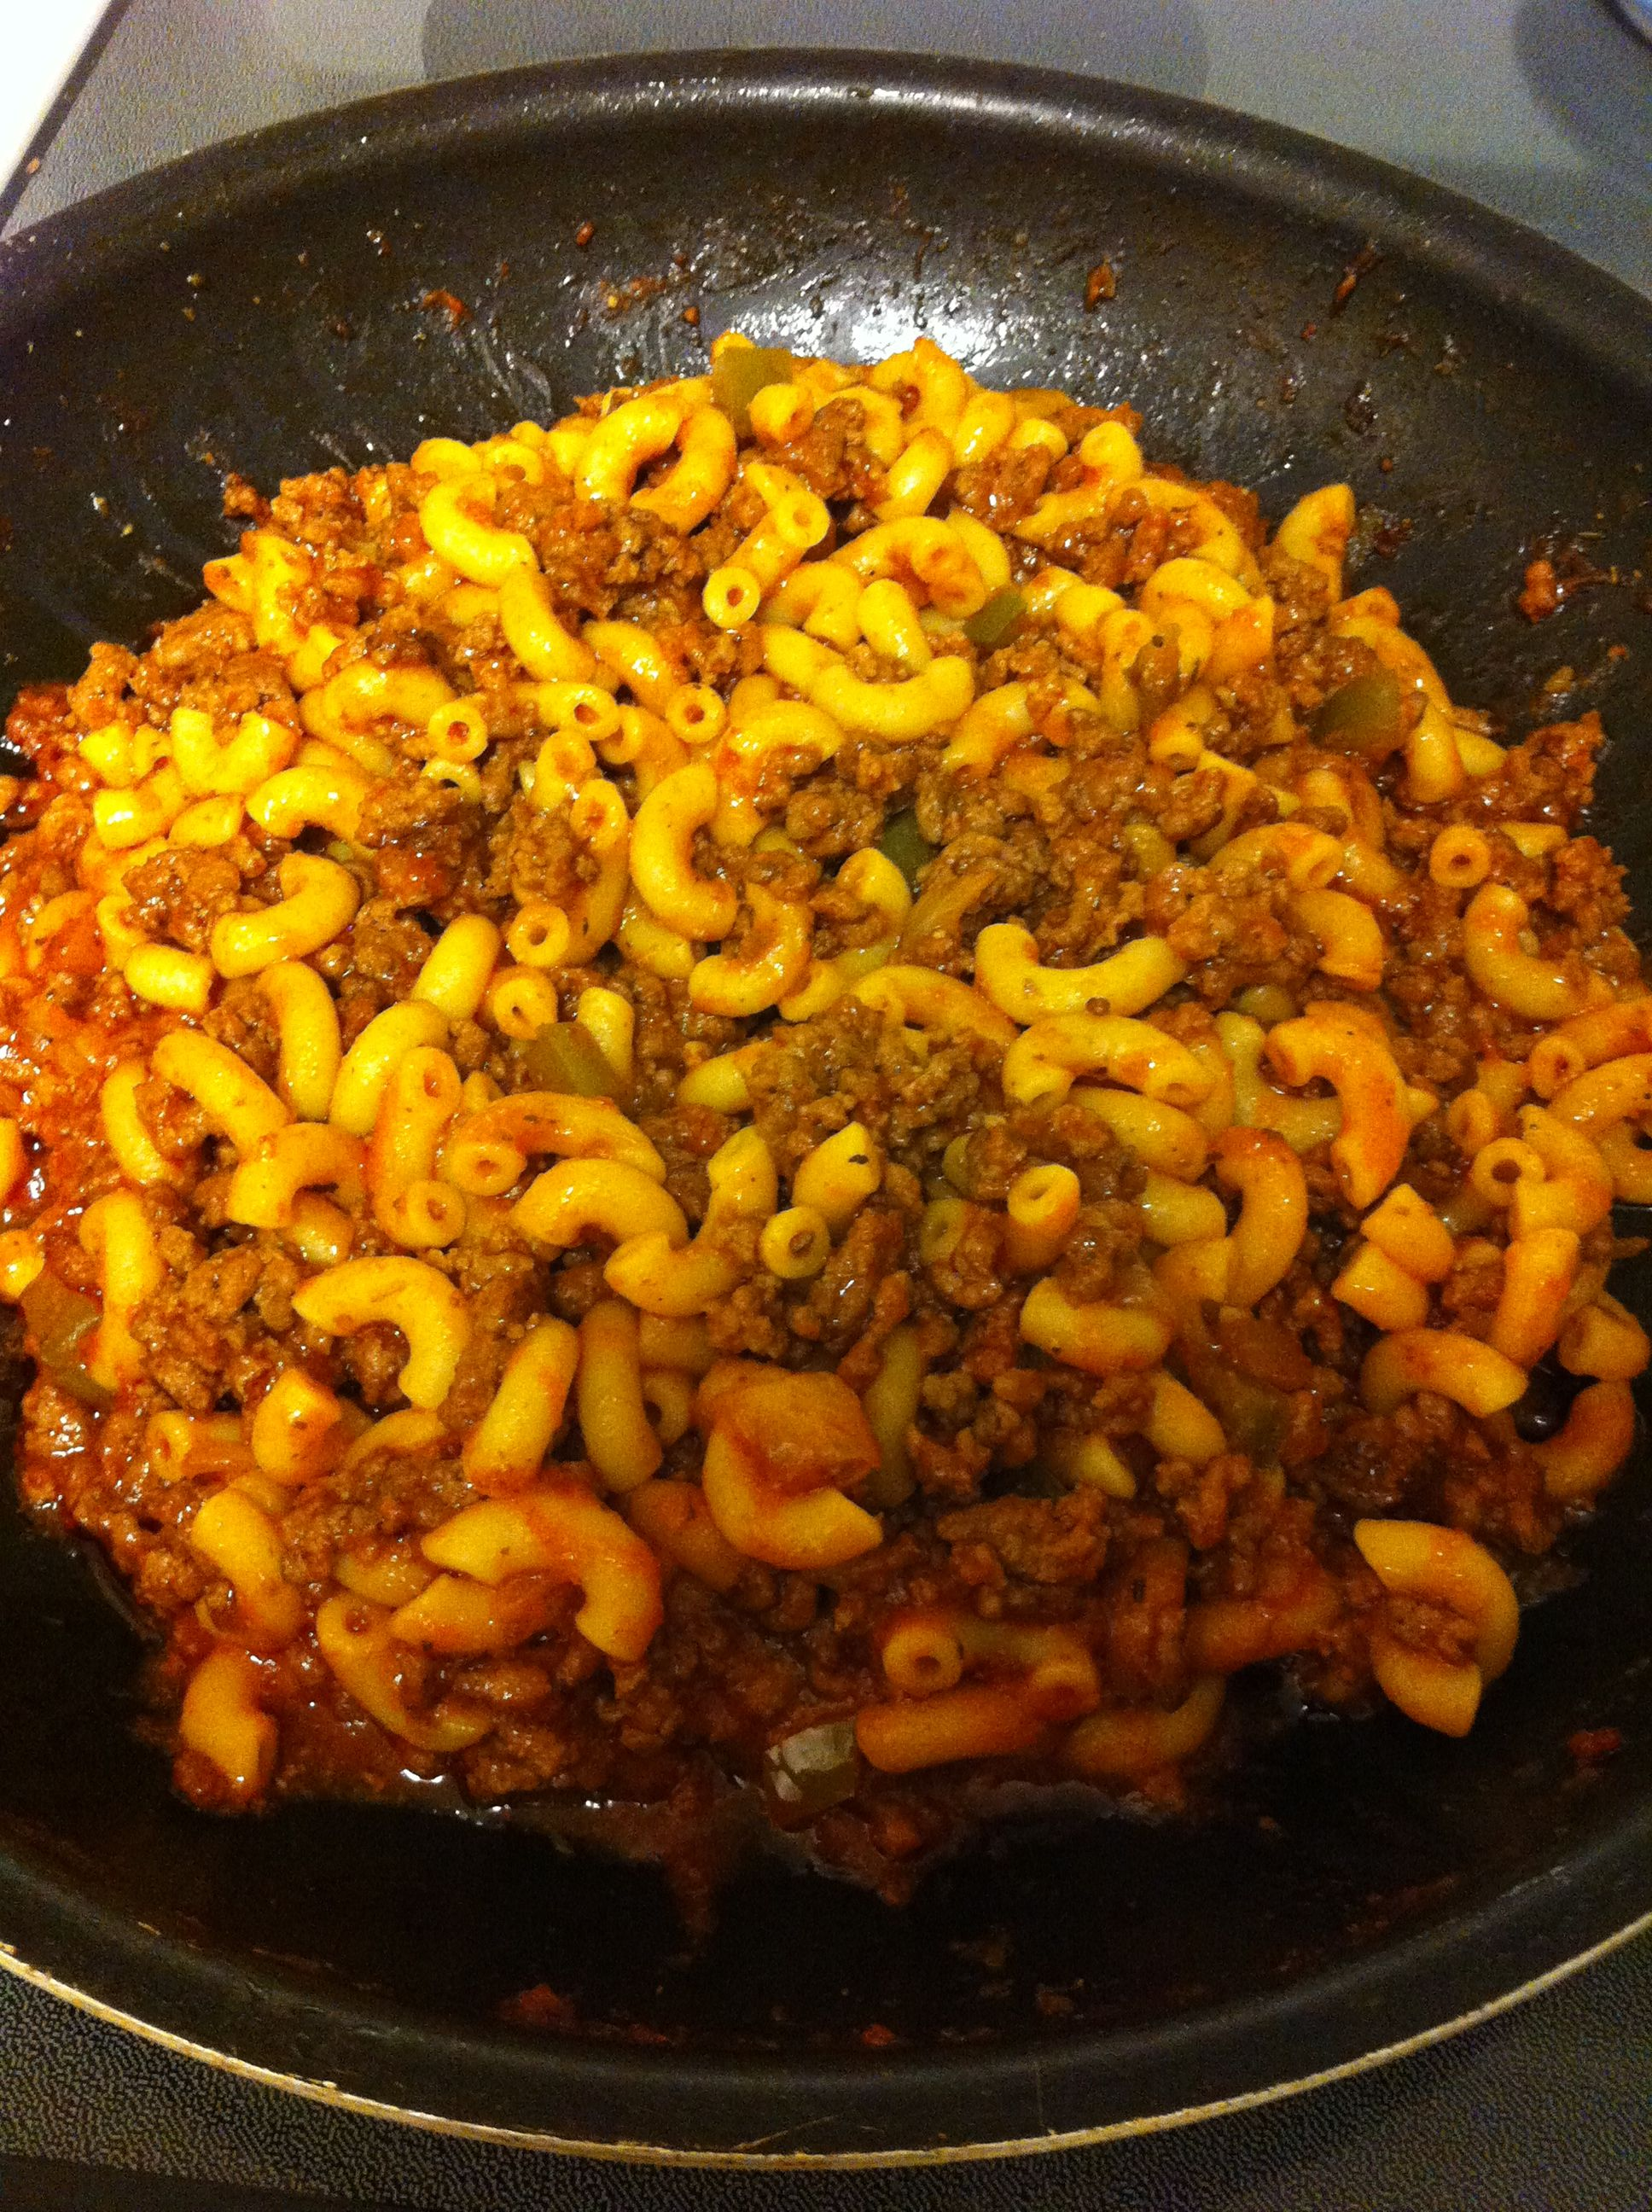 My Goulash Recipe 1 Lb Ground Beef 1 4 Cup Chopped Onion 1 4 Cup Green Pepper More Or Less Spending On Main Dish Recipes Beef Dinner Beef Recipes